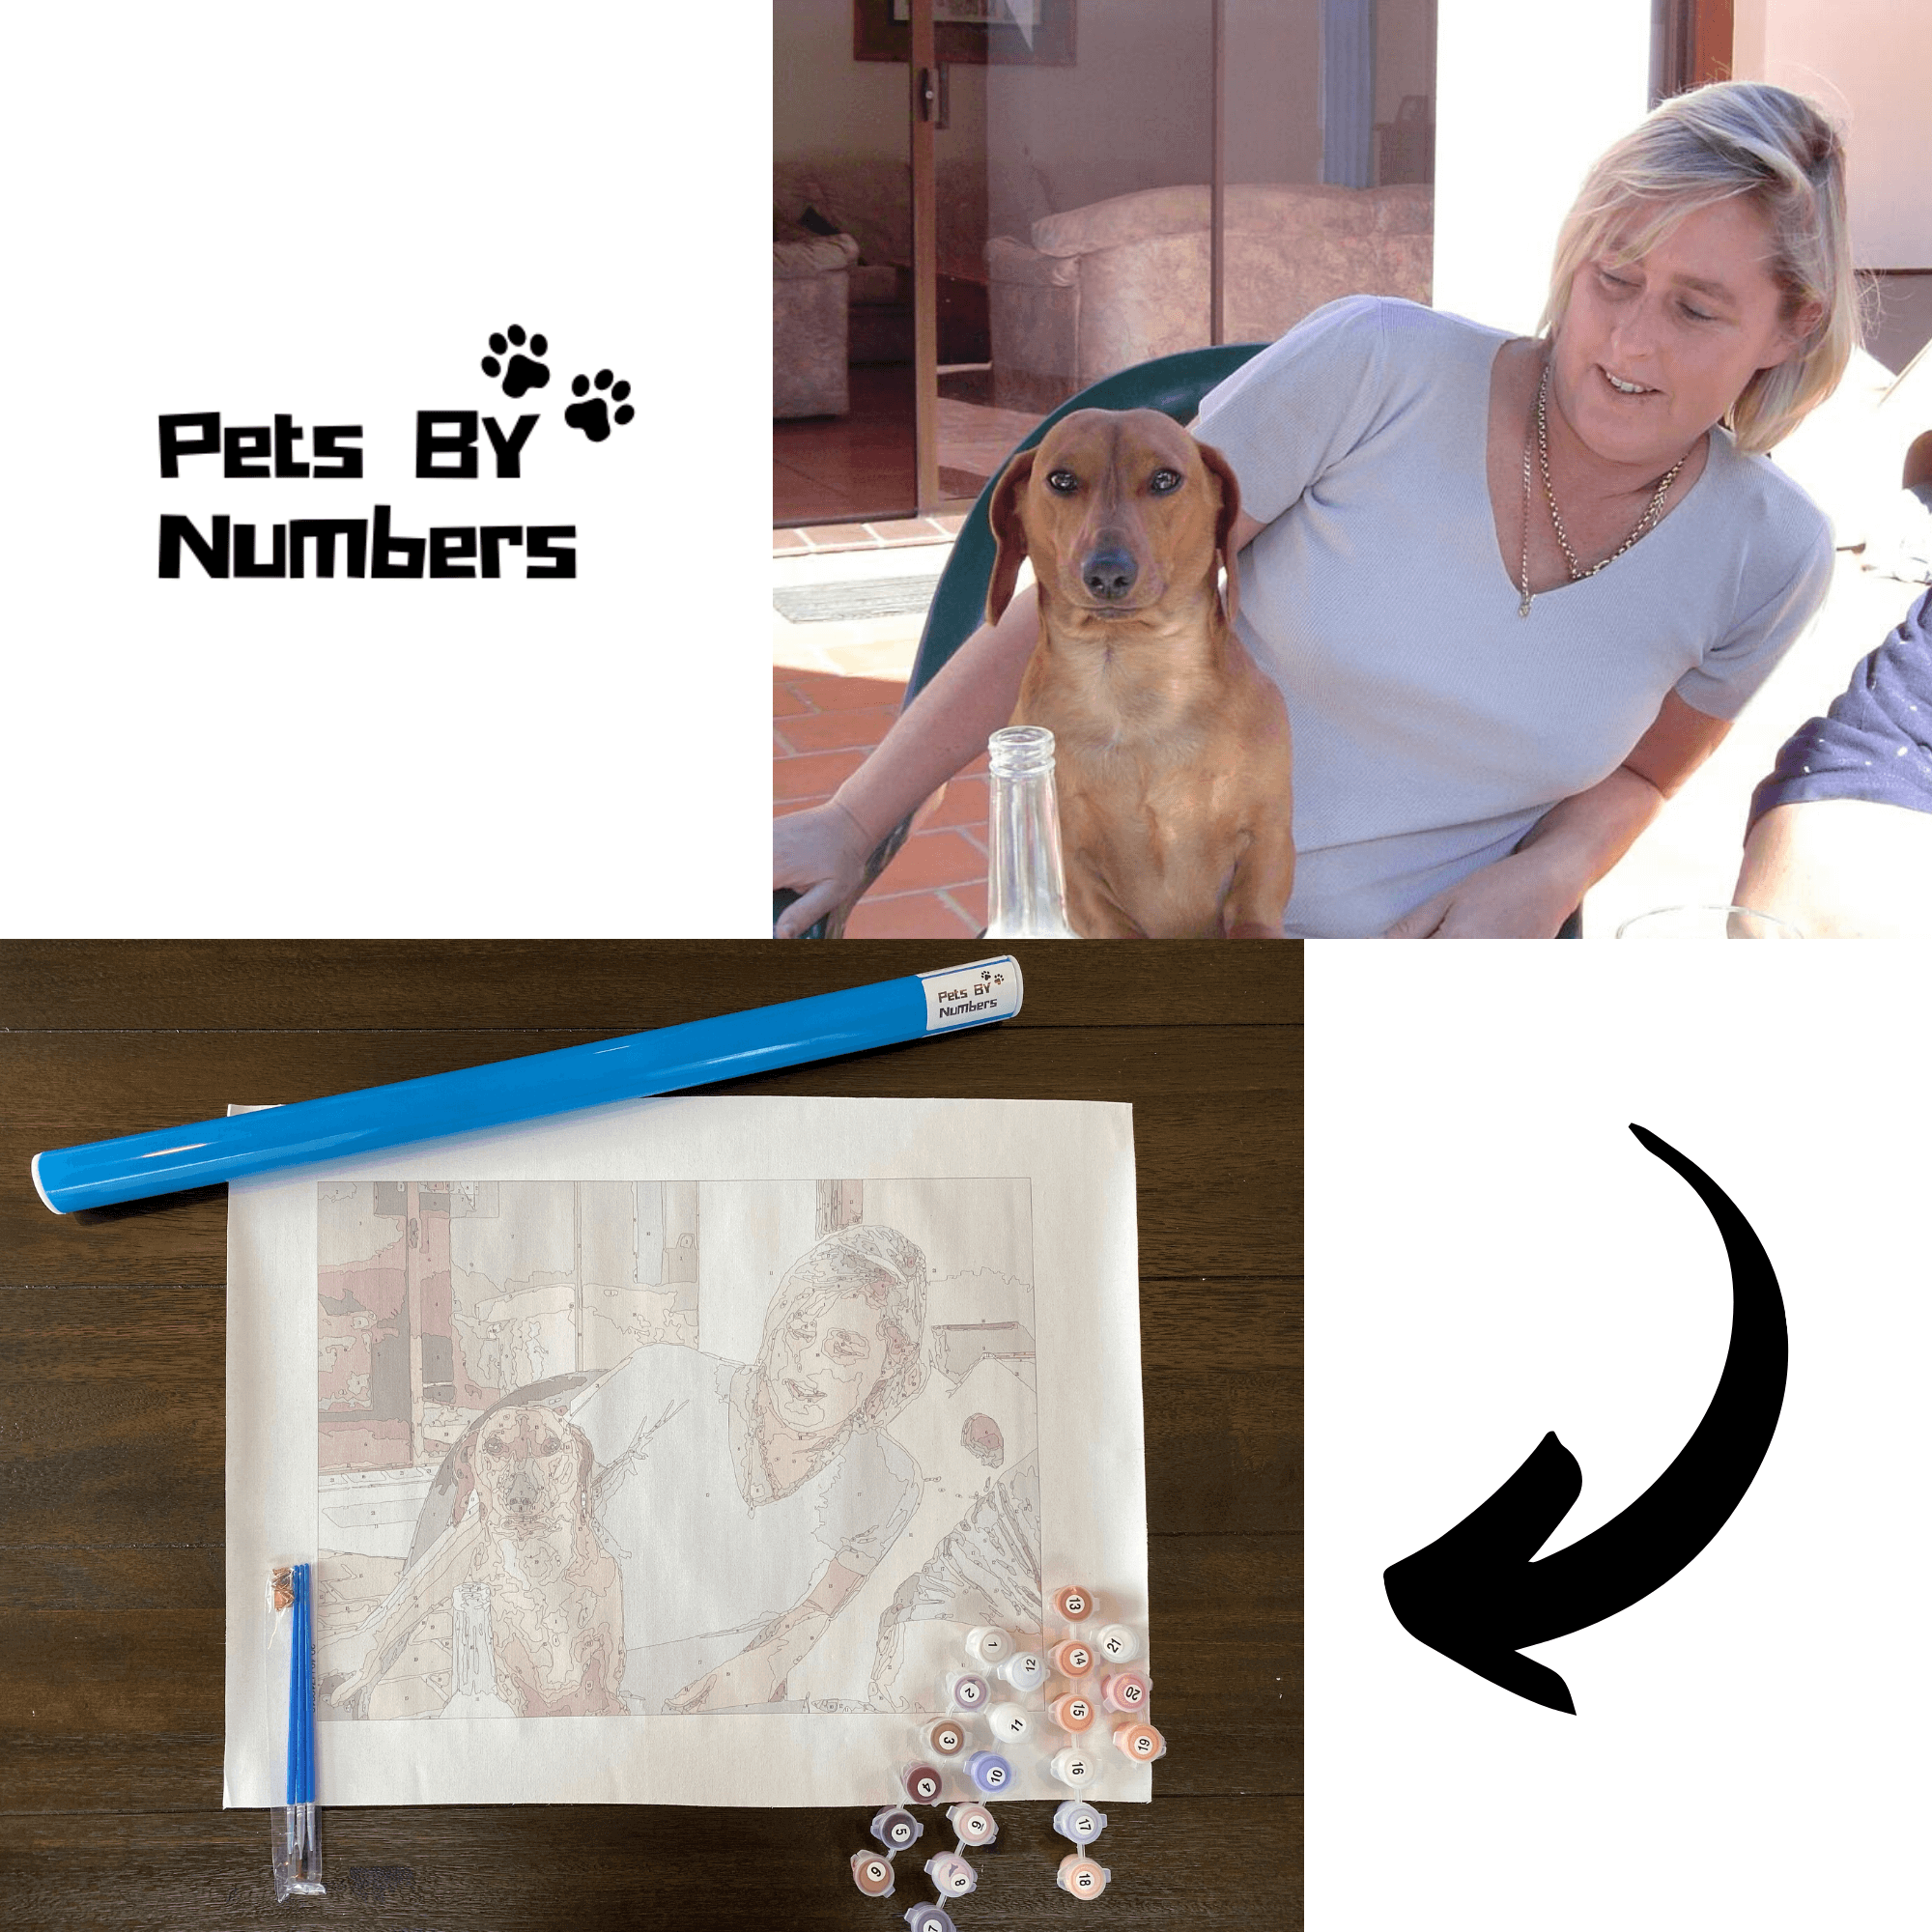 Enjoy the best benefits in terms of turning your pet's photo into a superhero Wall art